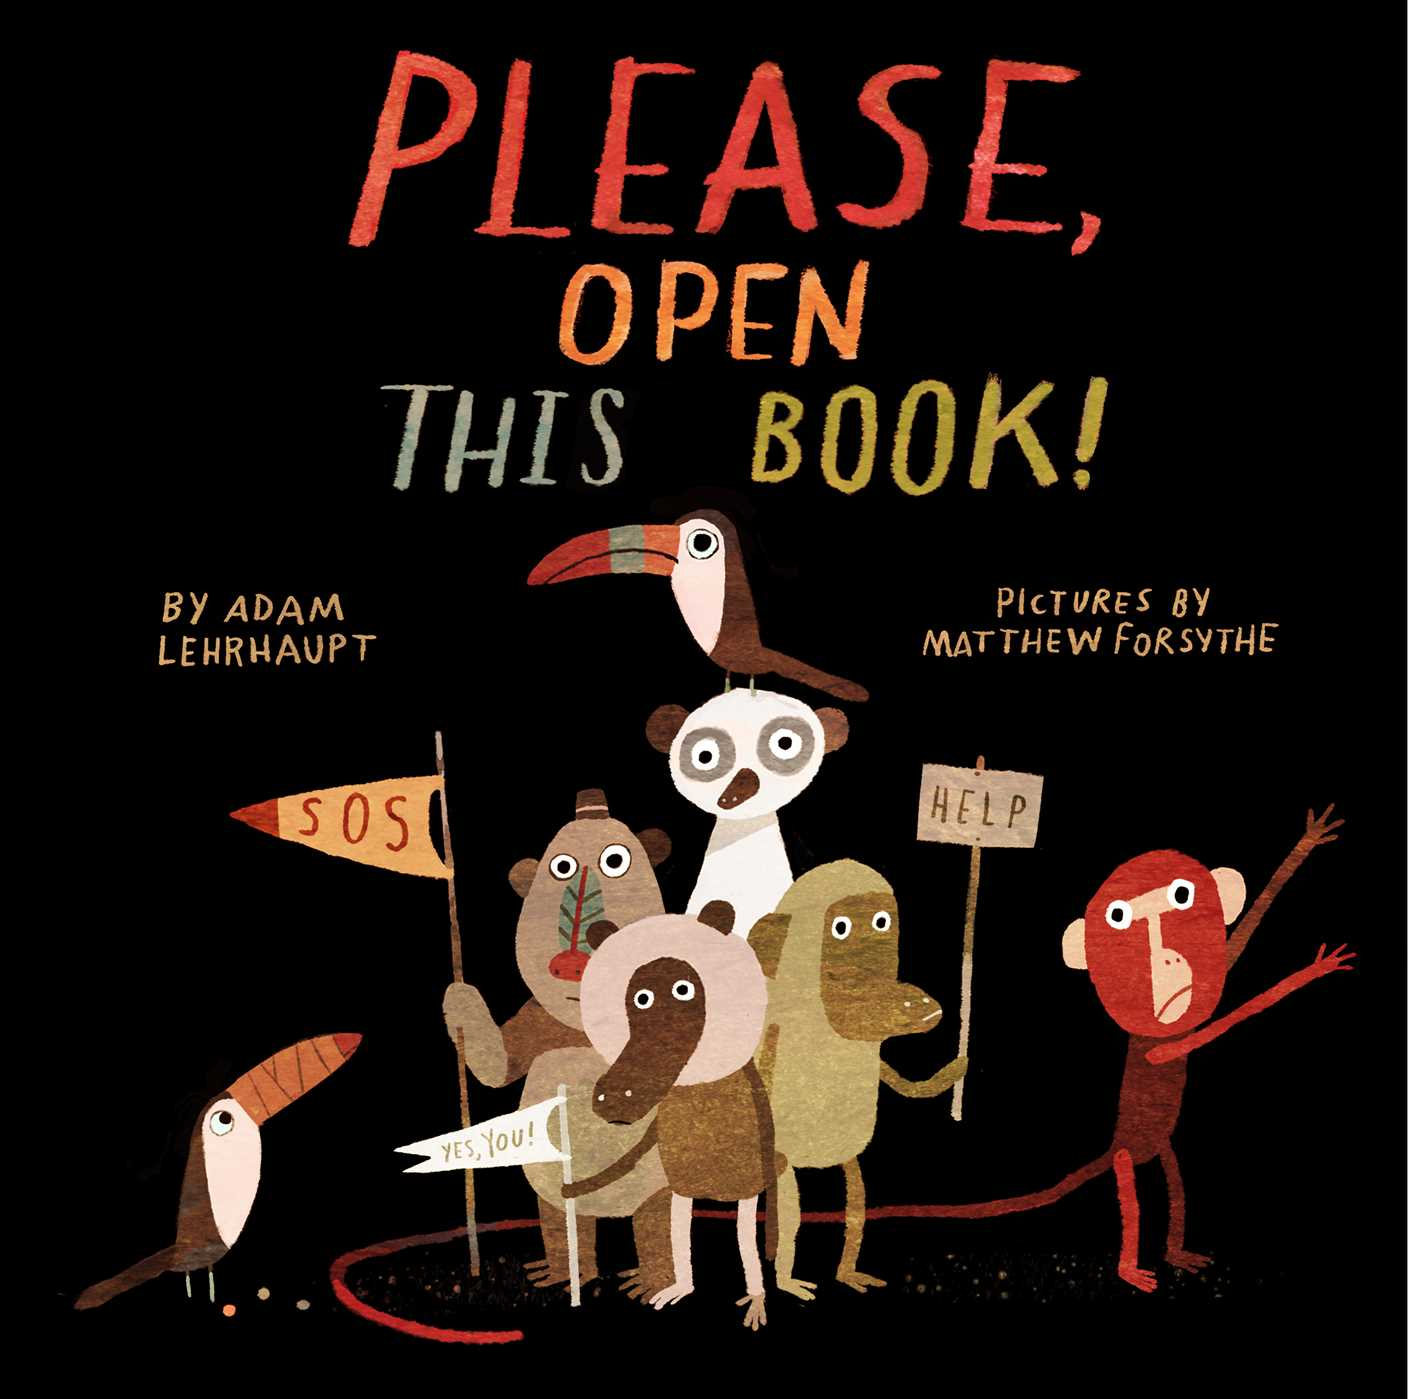 Please-open-this-book!-9781442450714_hr